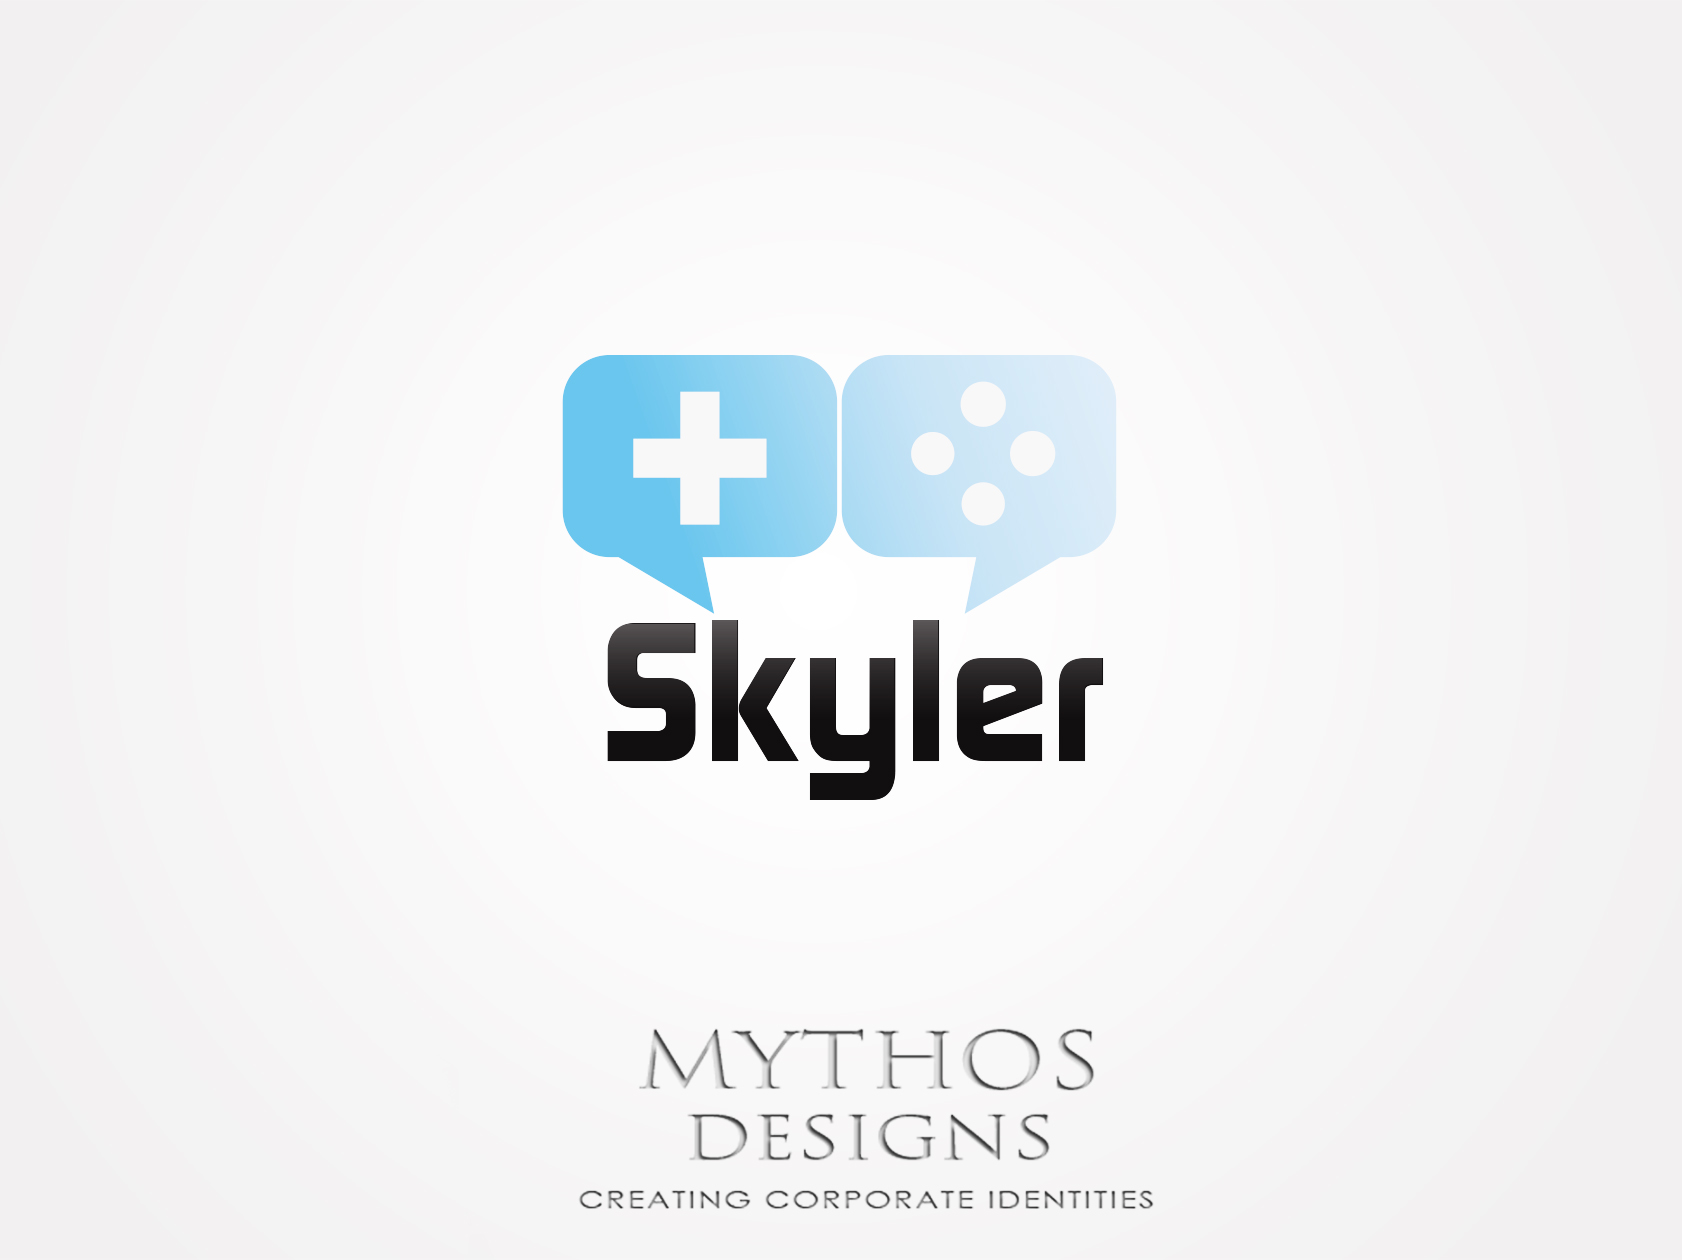 Logo Design by Mythos Designs - Entry No. 1 in the Logo Design Contest Artistic Logo Design for Skyler.Asia.